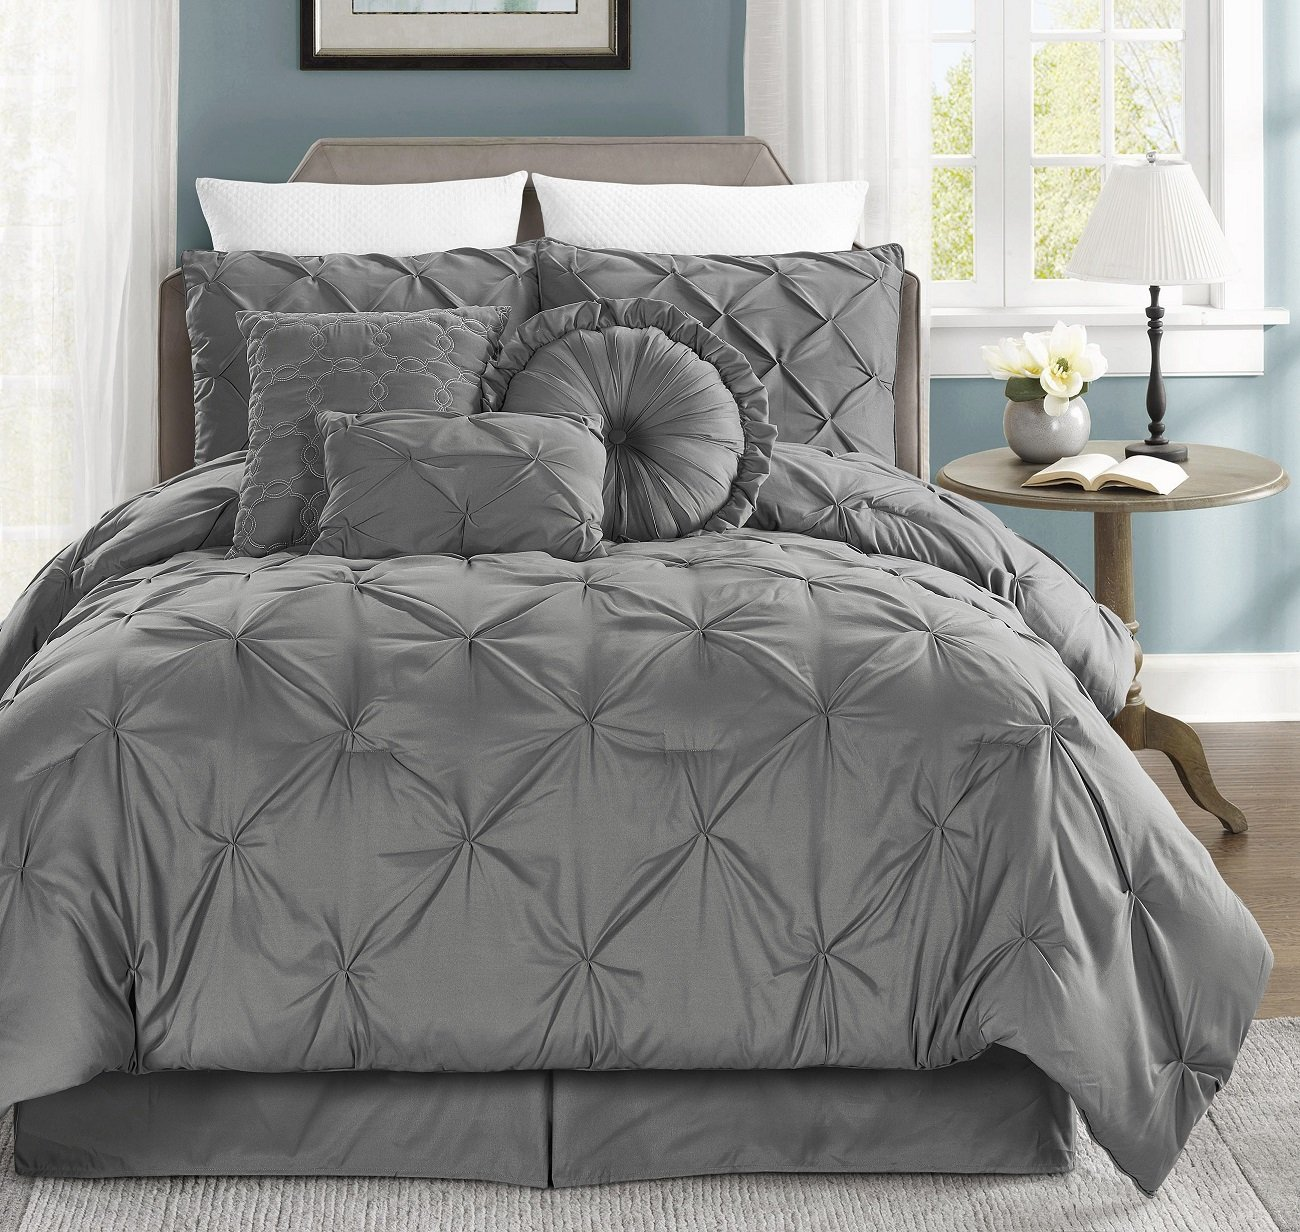 elm from cotton navy and pintuck size sale ruffle duvet sweetly rit purple pin inspired dyed sheets west sets duvets cover king patterned comforter white tucked organic pinched queen